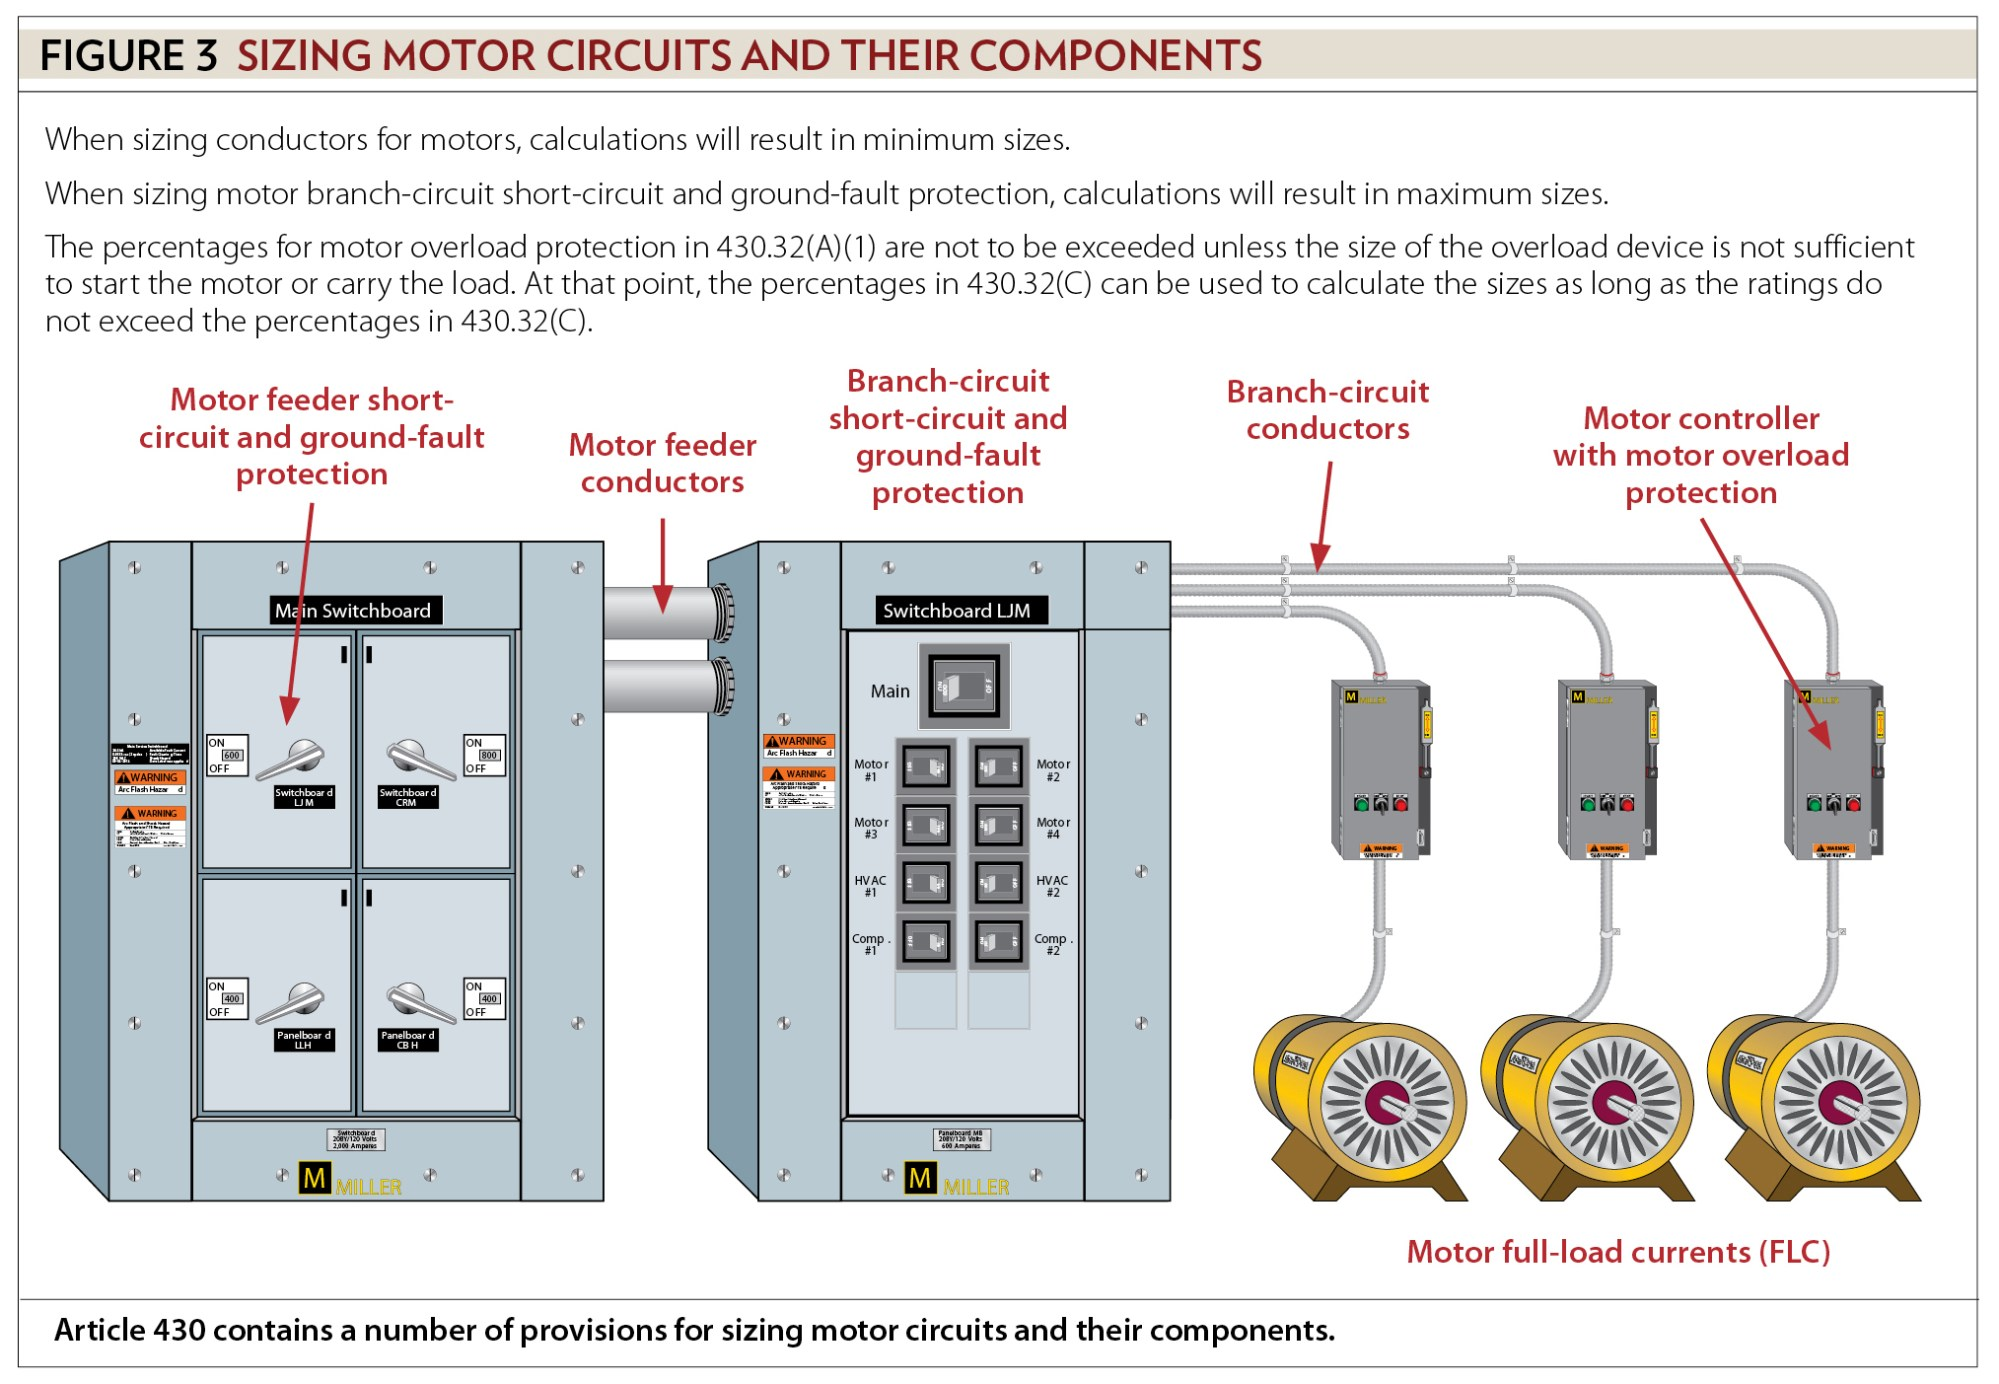 hight resolution of some but not all motor conductor and component sizing is to find the minimum size some provisions in article 430 are there to ensure the conductor or